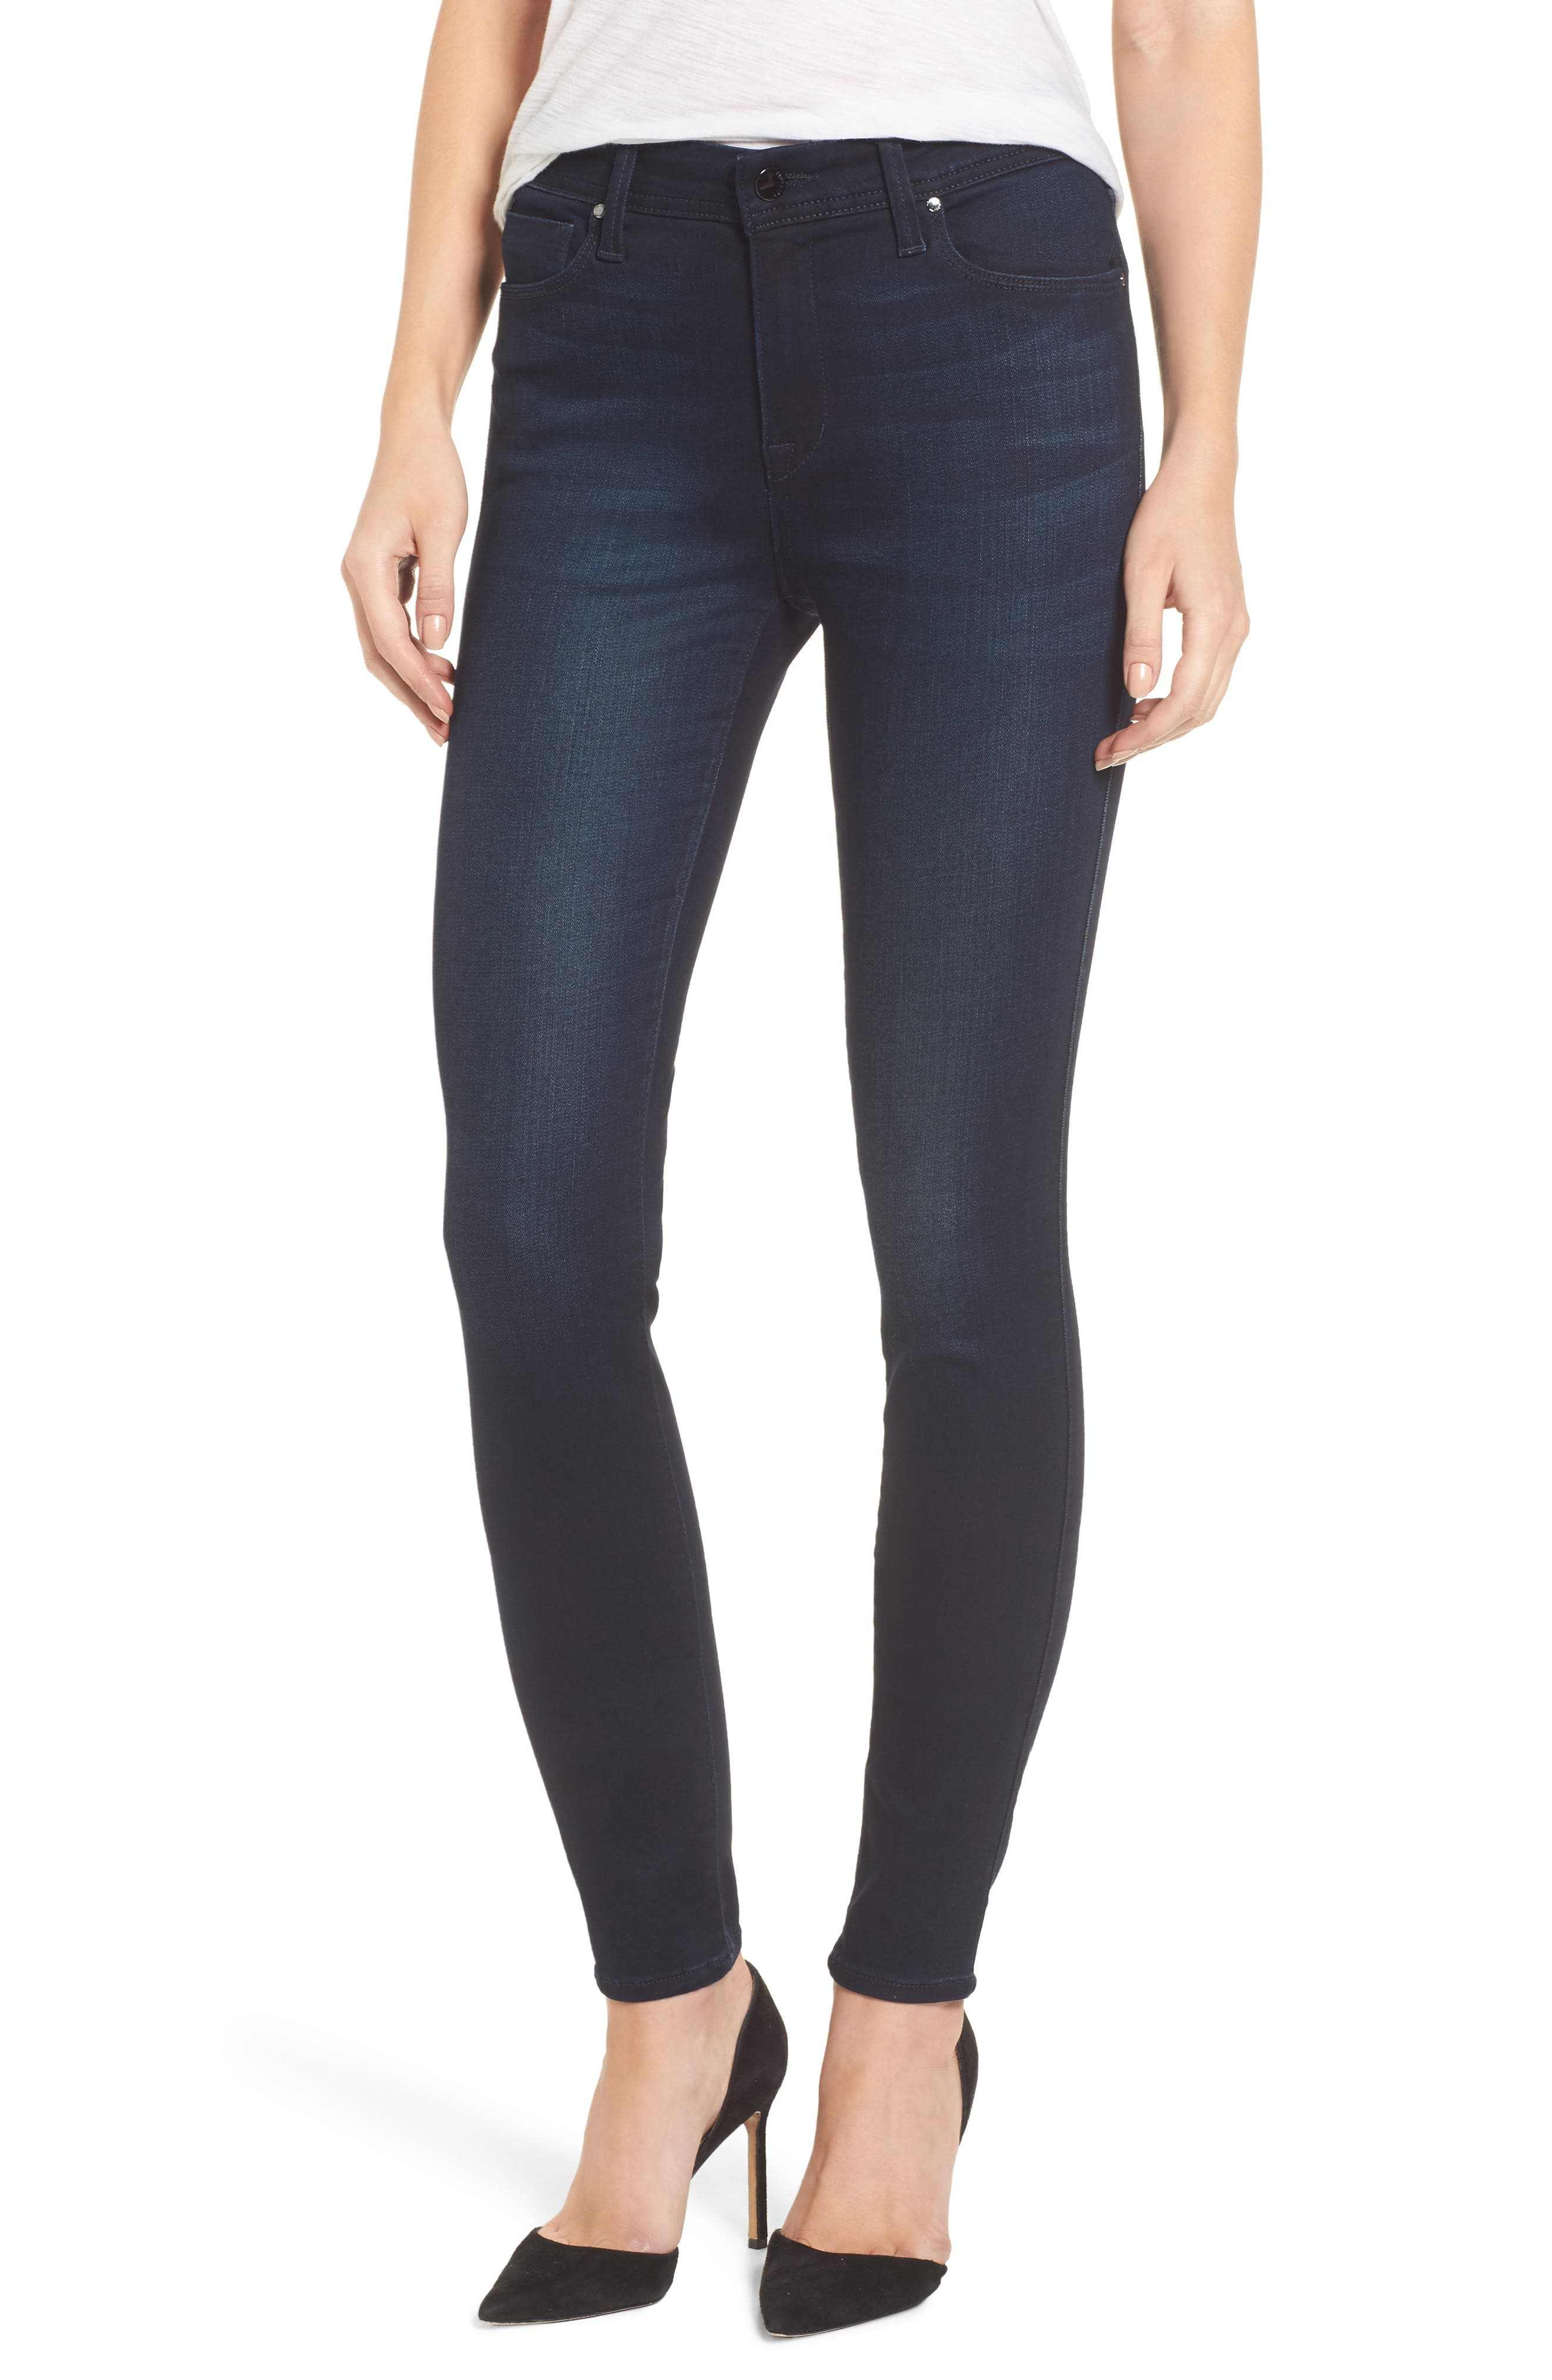 Main Image - Fidelity Jeans Belvedere Skinny Jeans (Sapphire)